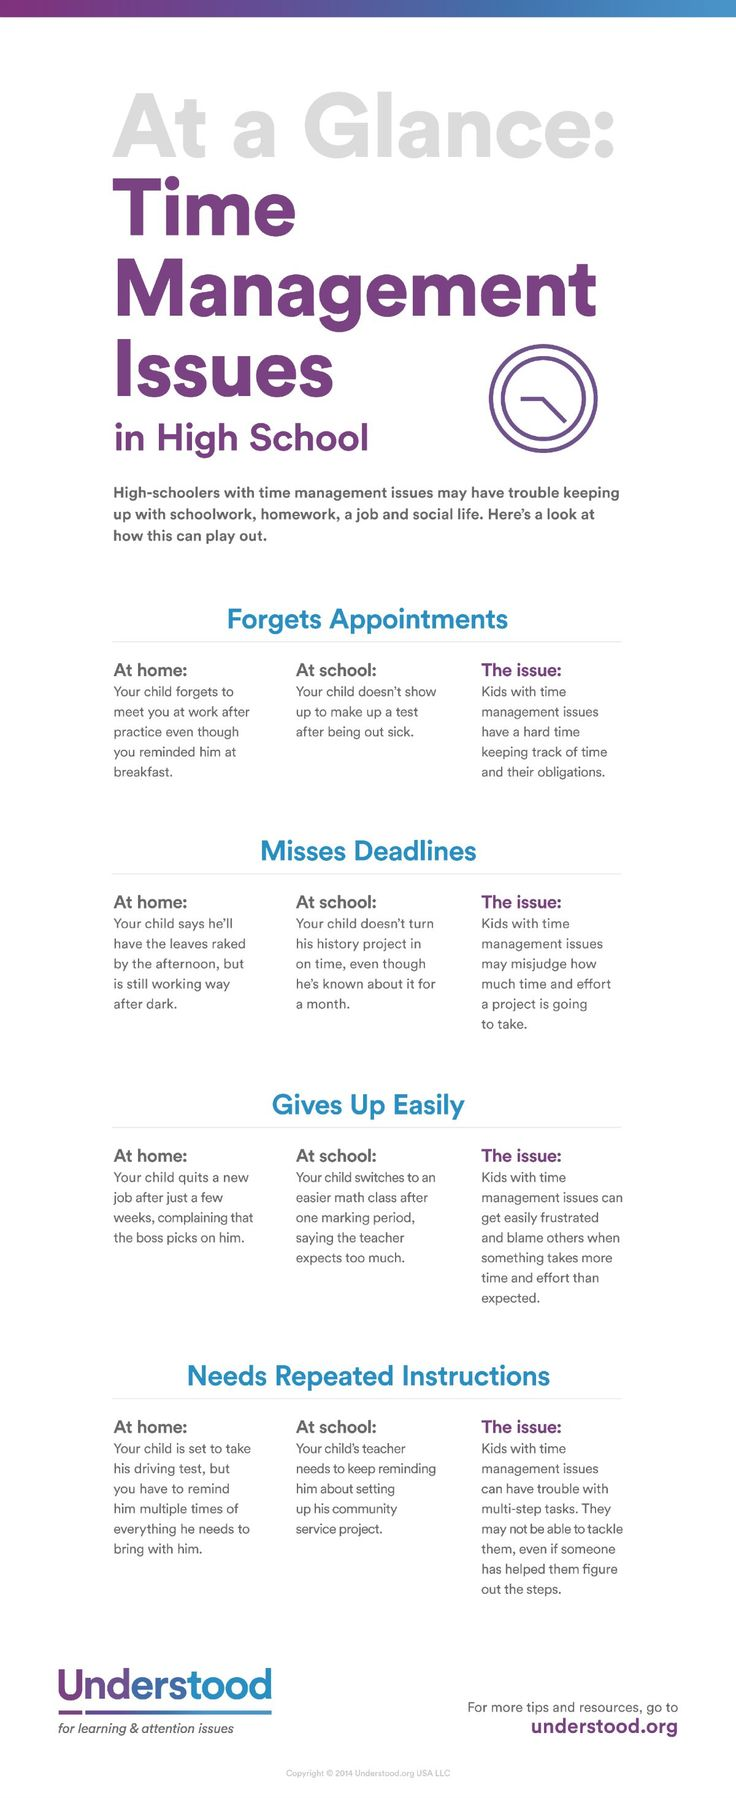 Click through to get more info about organization and time management issues and how to help.